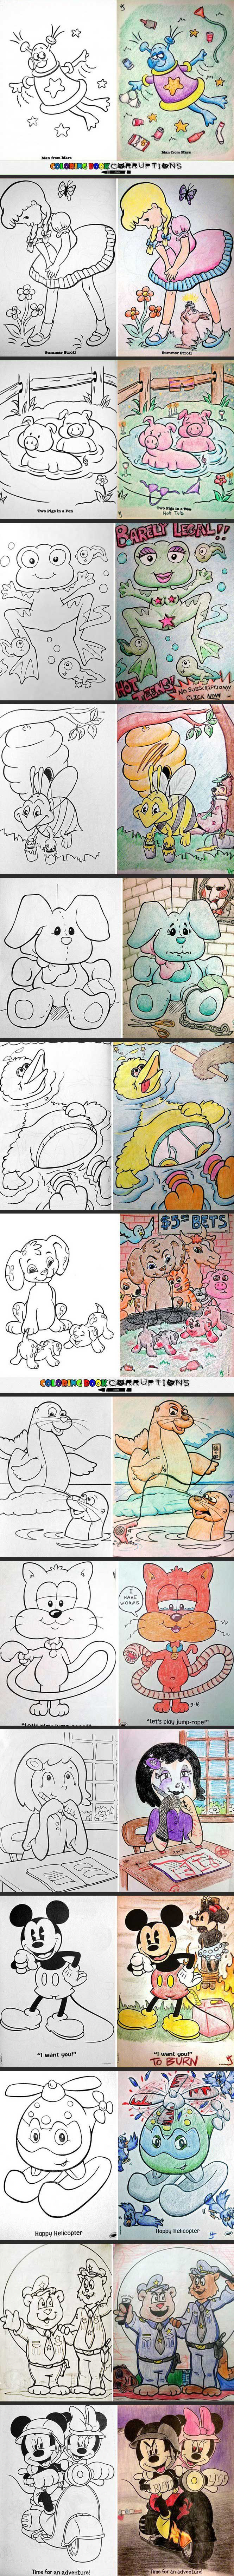 Coloring Book Corruptions Part II